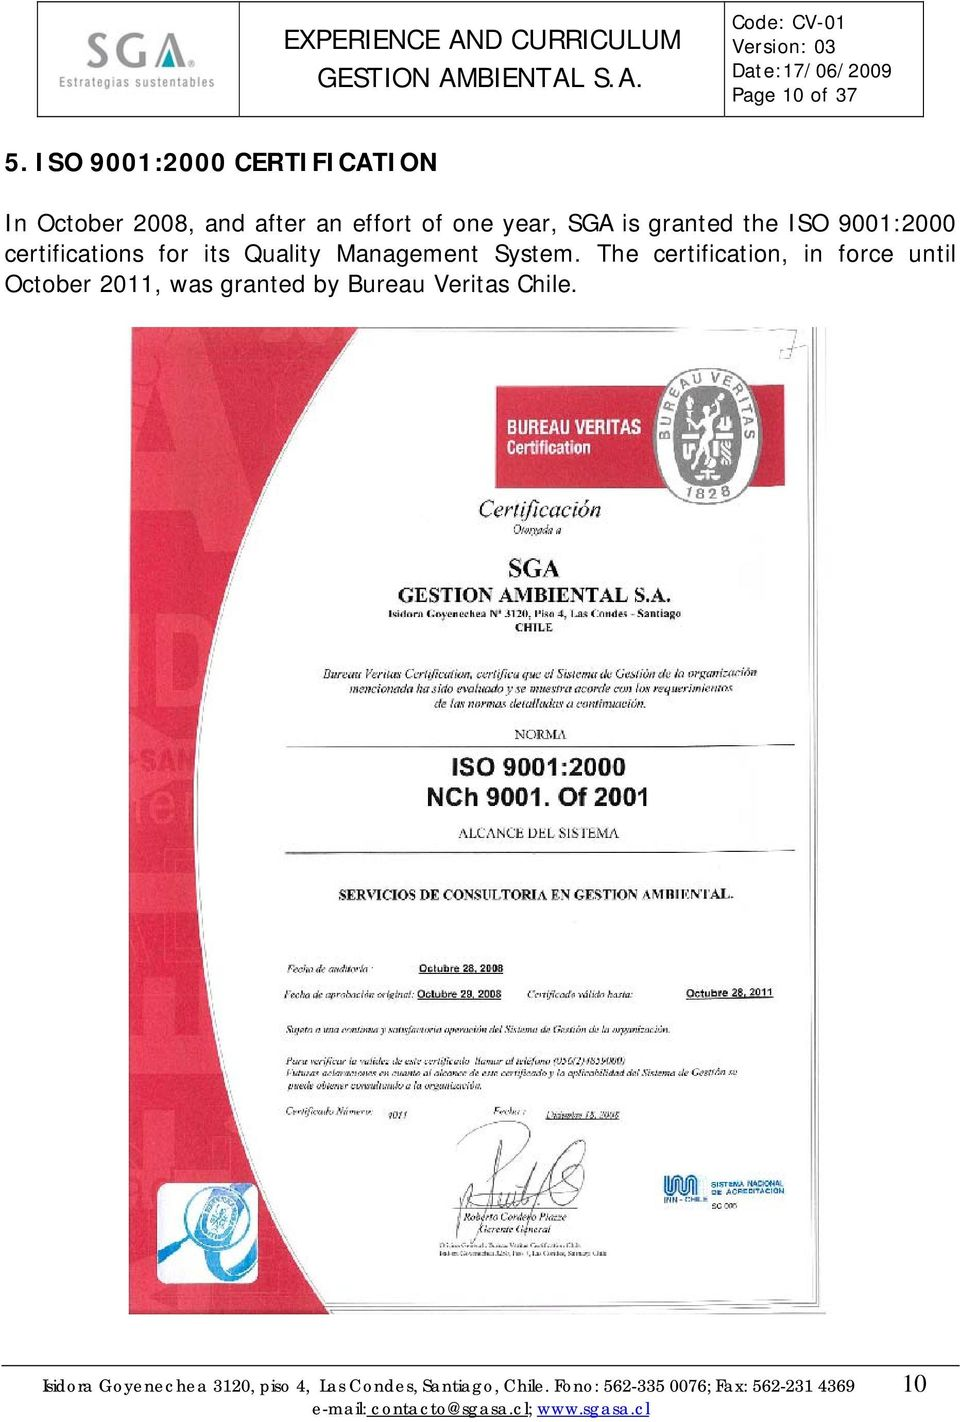 granted the ISO 9001:2000 certifications for its Quality Management System.